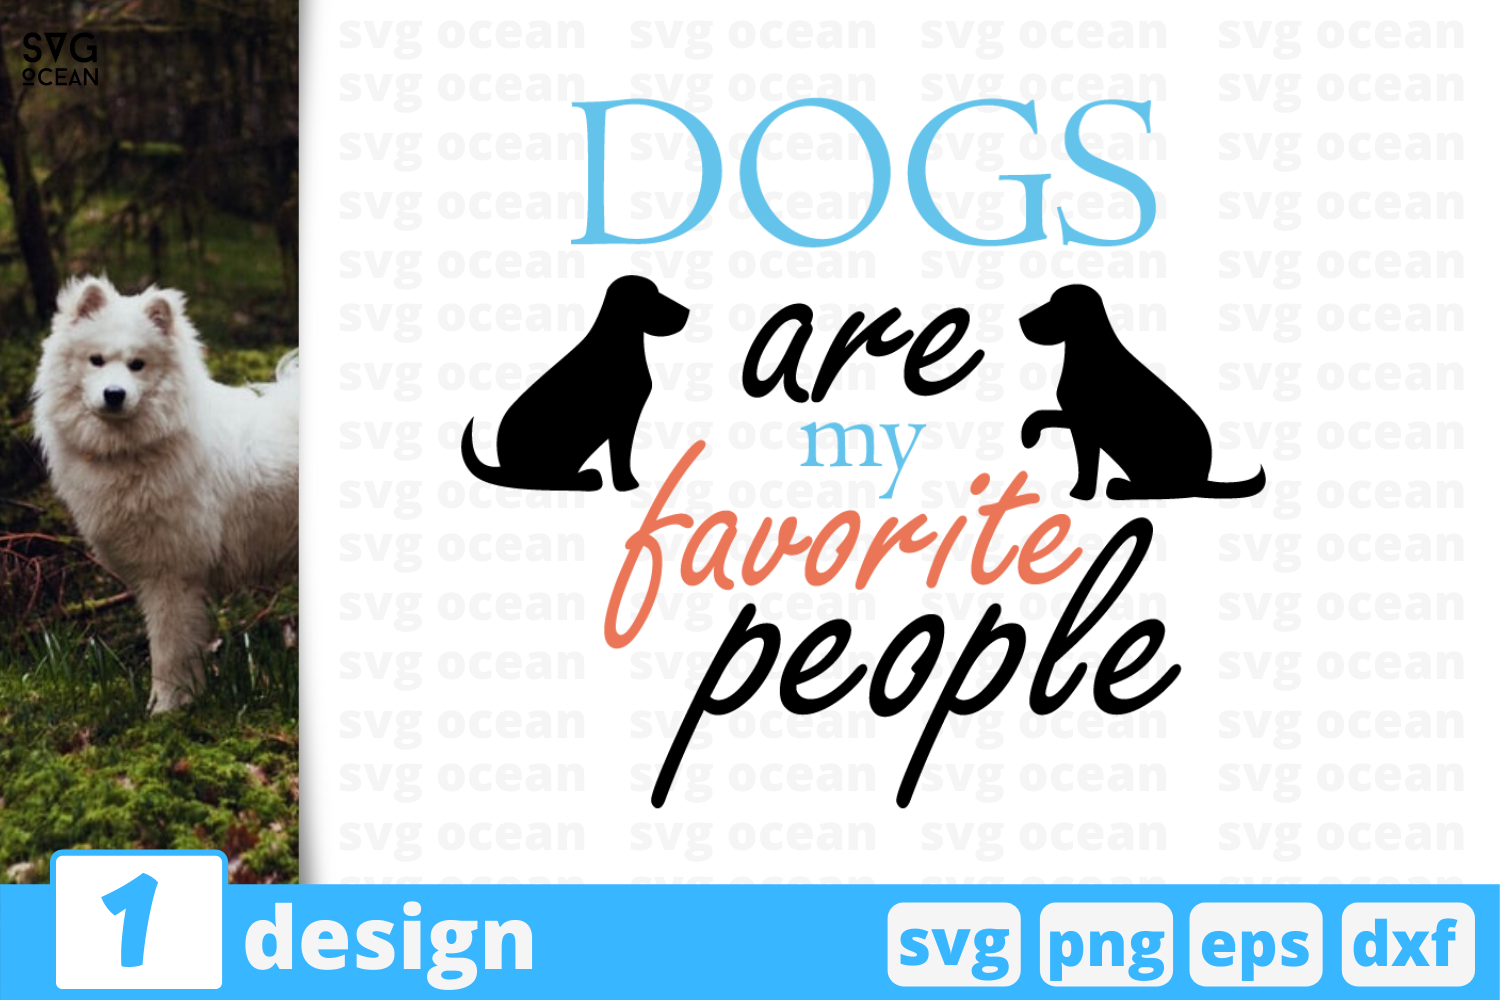 Download Free Dogs Are My Favorite People Graphic By Svgocean Creative Fabrica for Cricut Explore, Silhouette and other cutting machines.